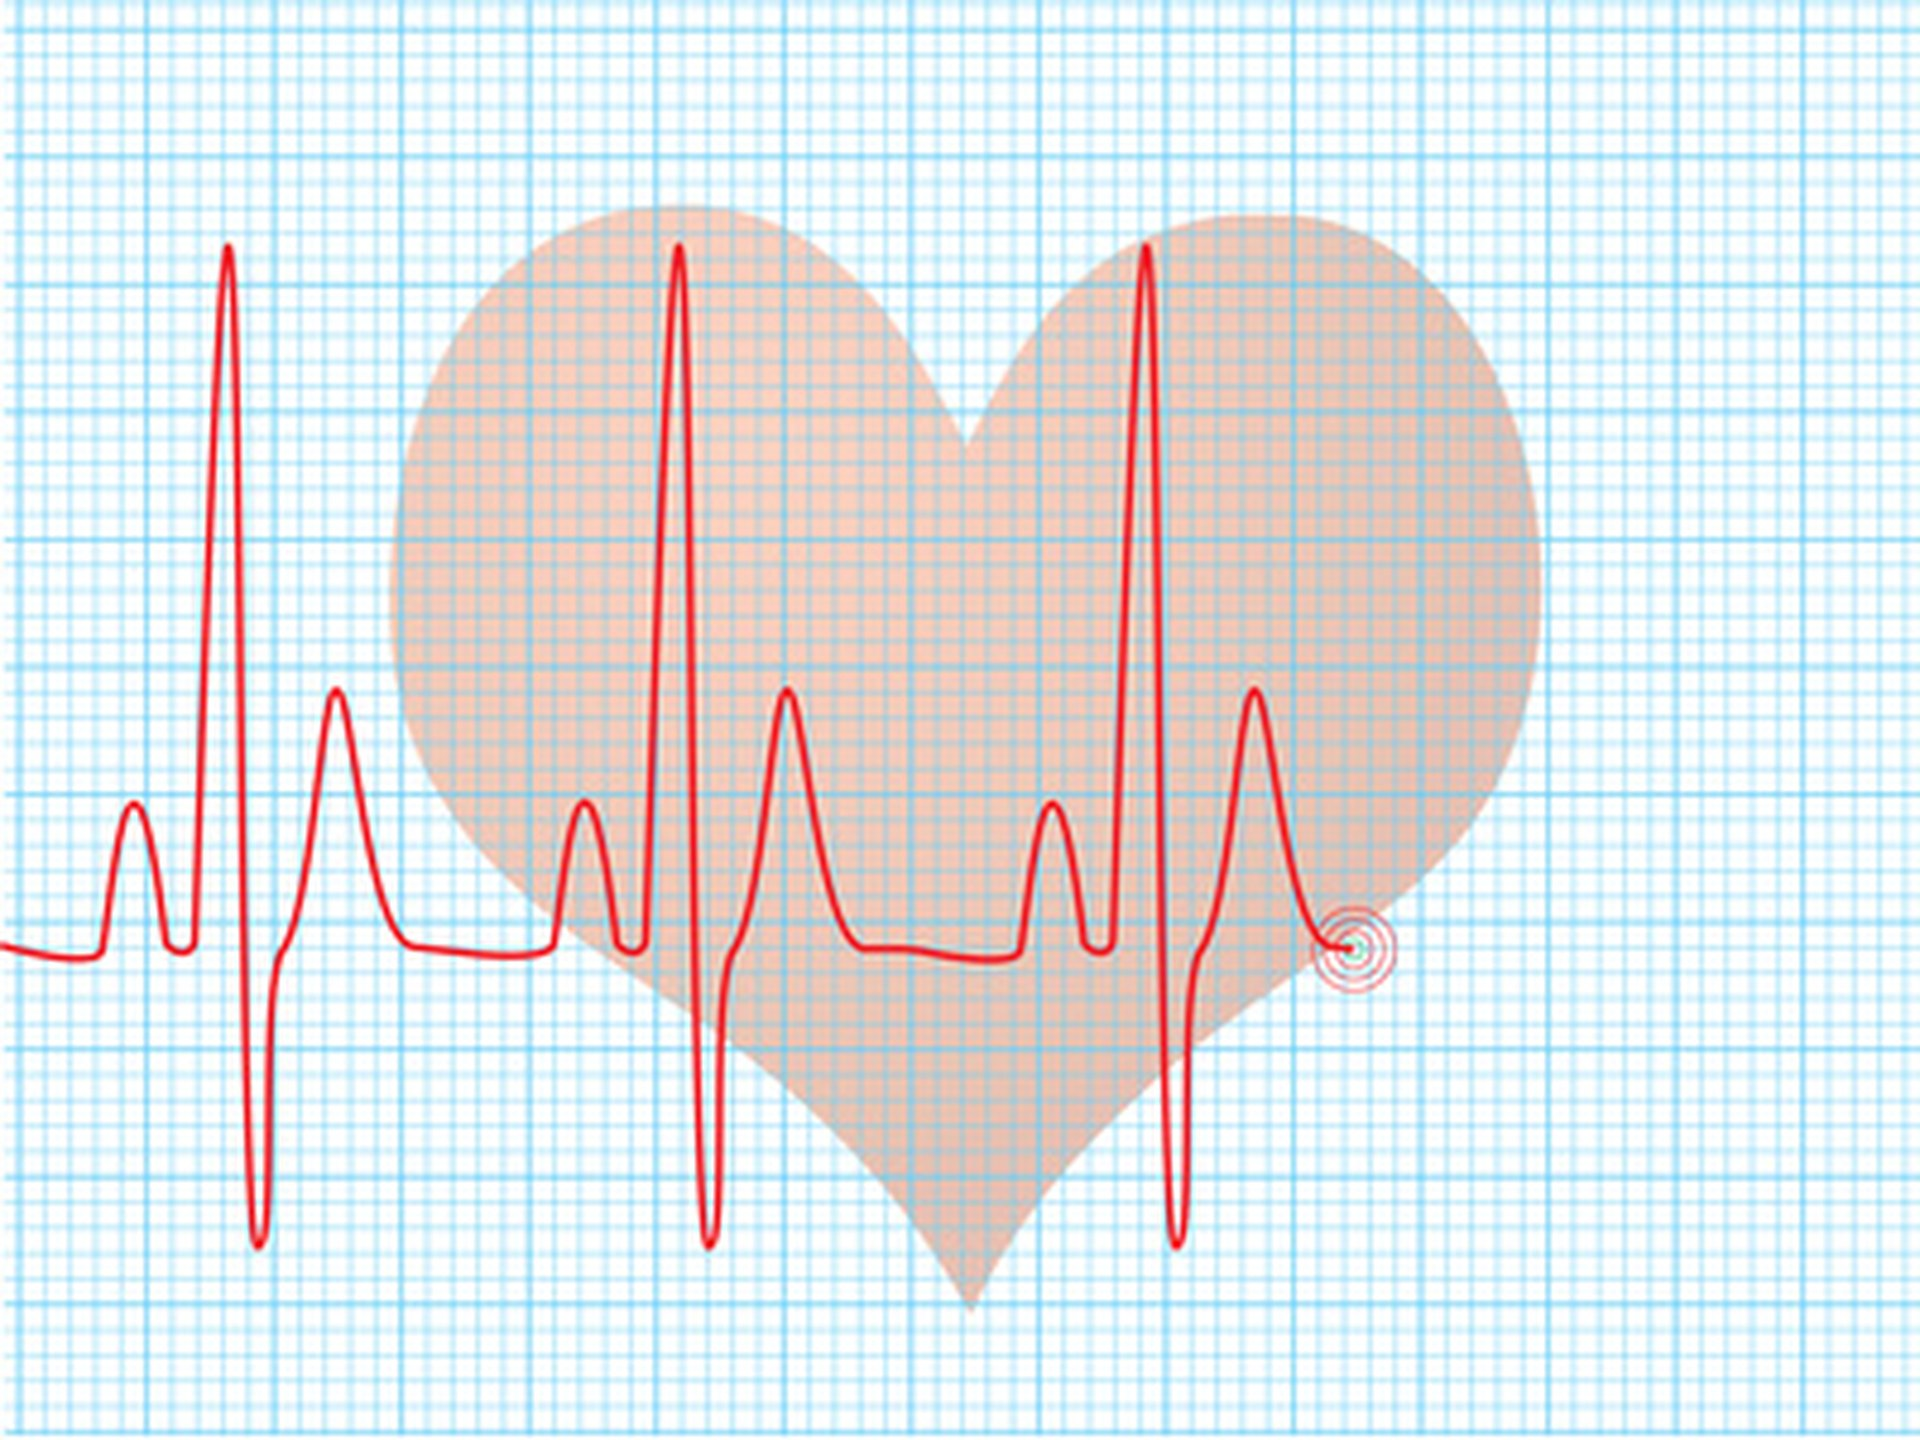 A Baby s Heart Rate During Pregnancy